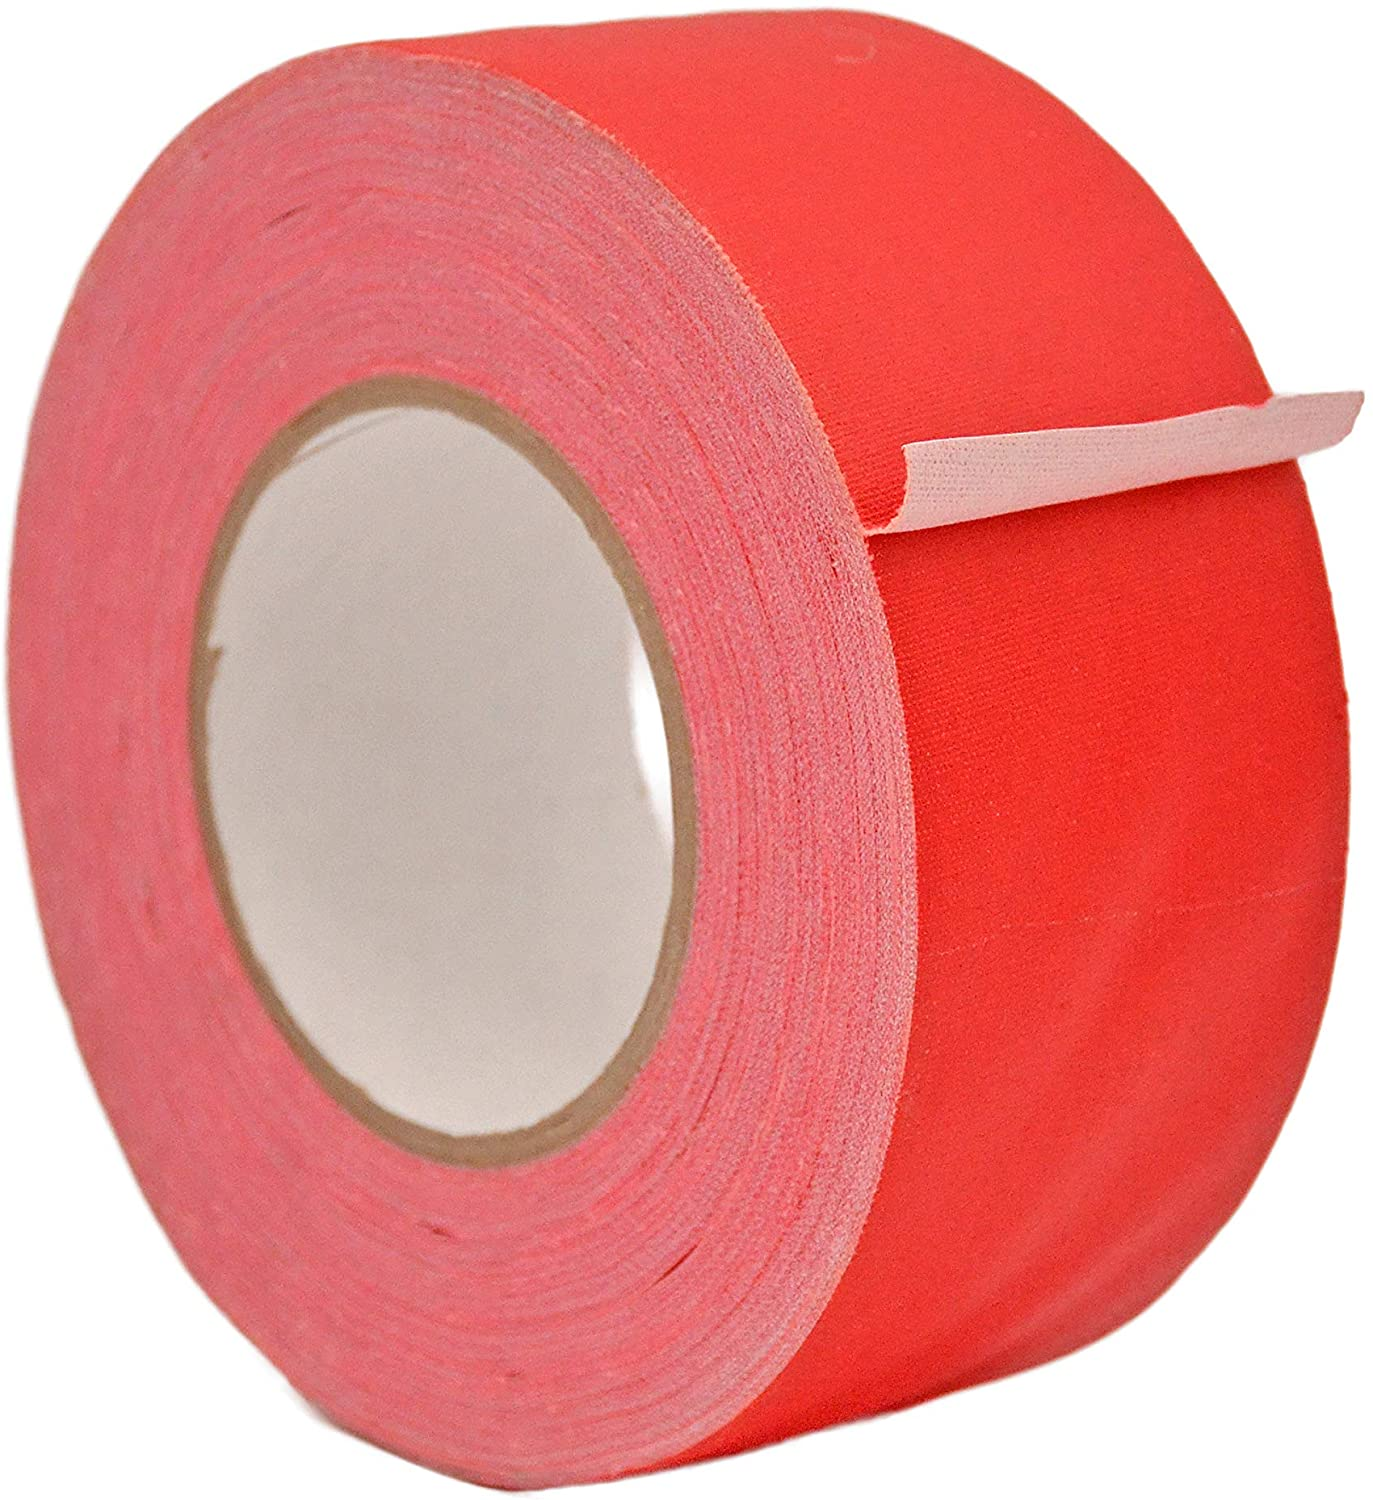 WOD GTMC12 Professional Grade Gaffer Tape, Red - 2.5 inch x 50 yds. (20-Rolls) No Sticky Residue, Secures Cables, Non Reflective, Easy to Tear, Gaff Cloth for Trade Shows, Concerts